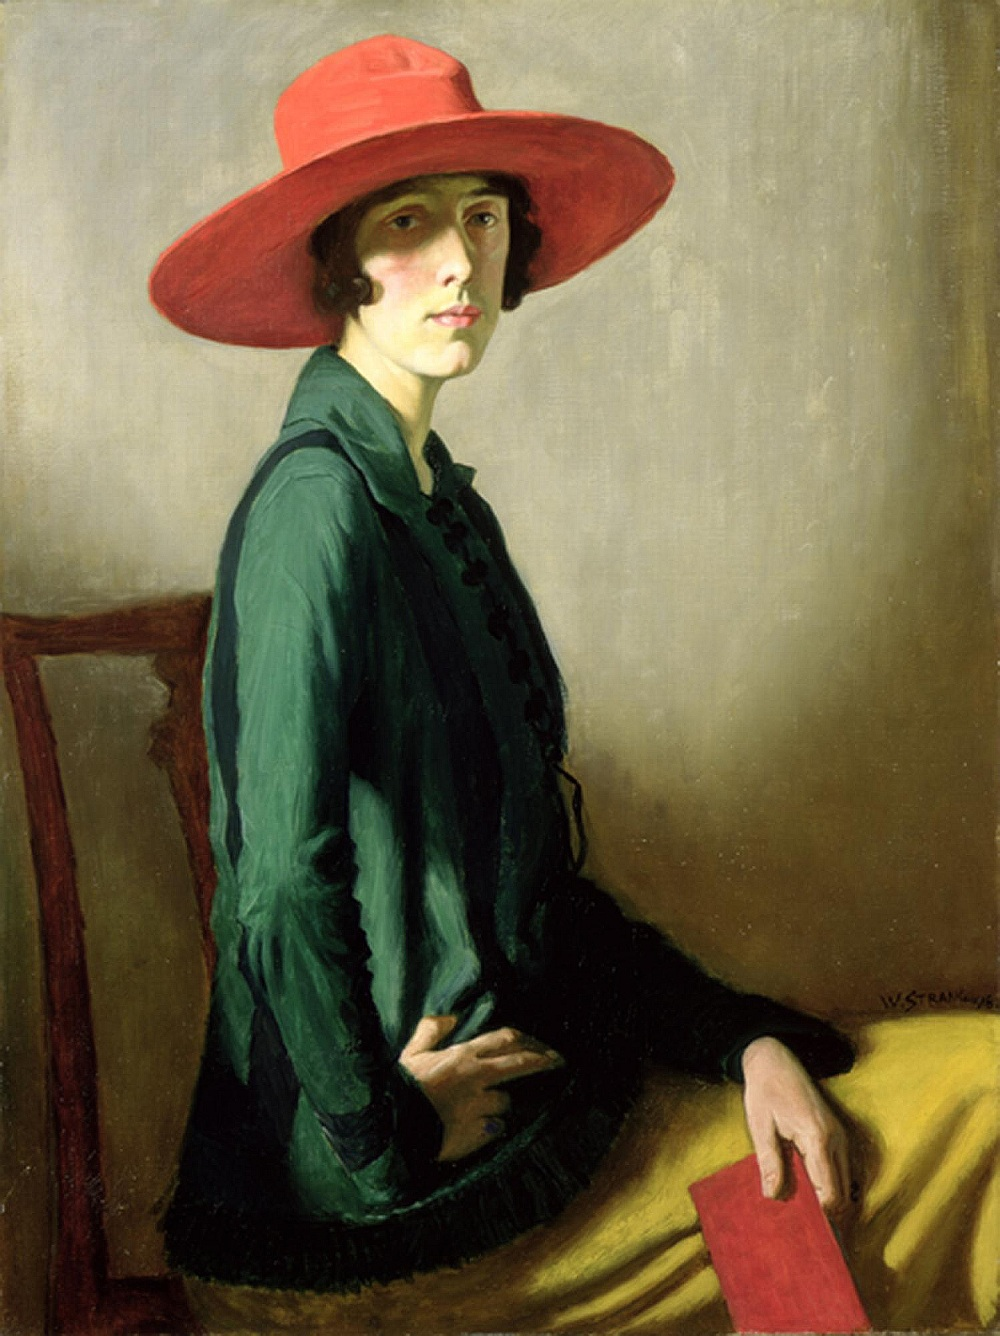 File:Vita sackville-west.jpg